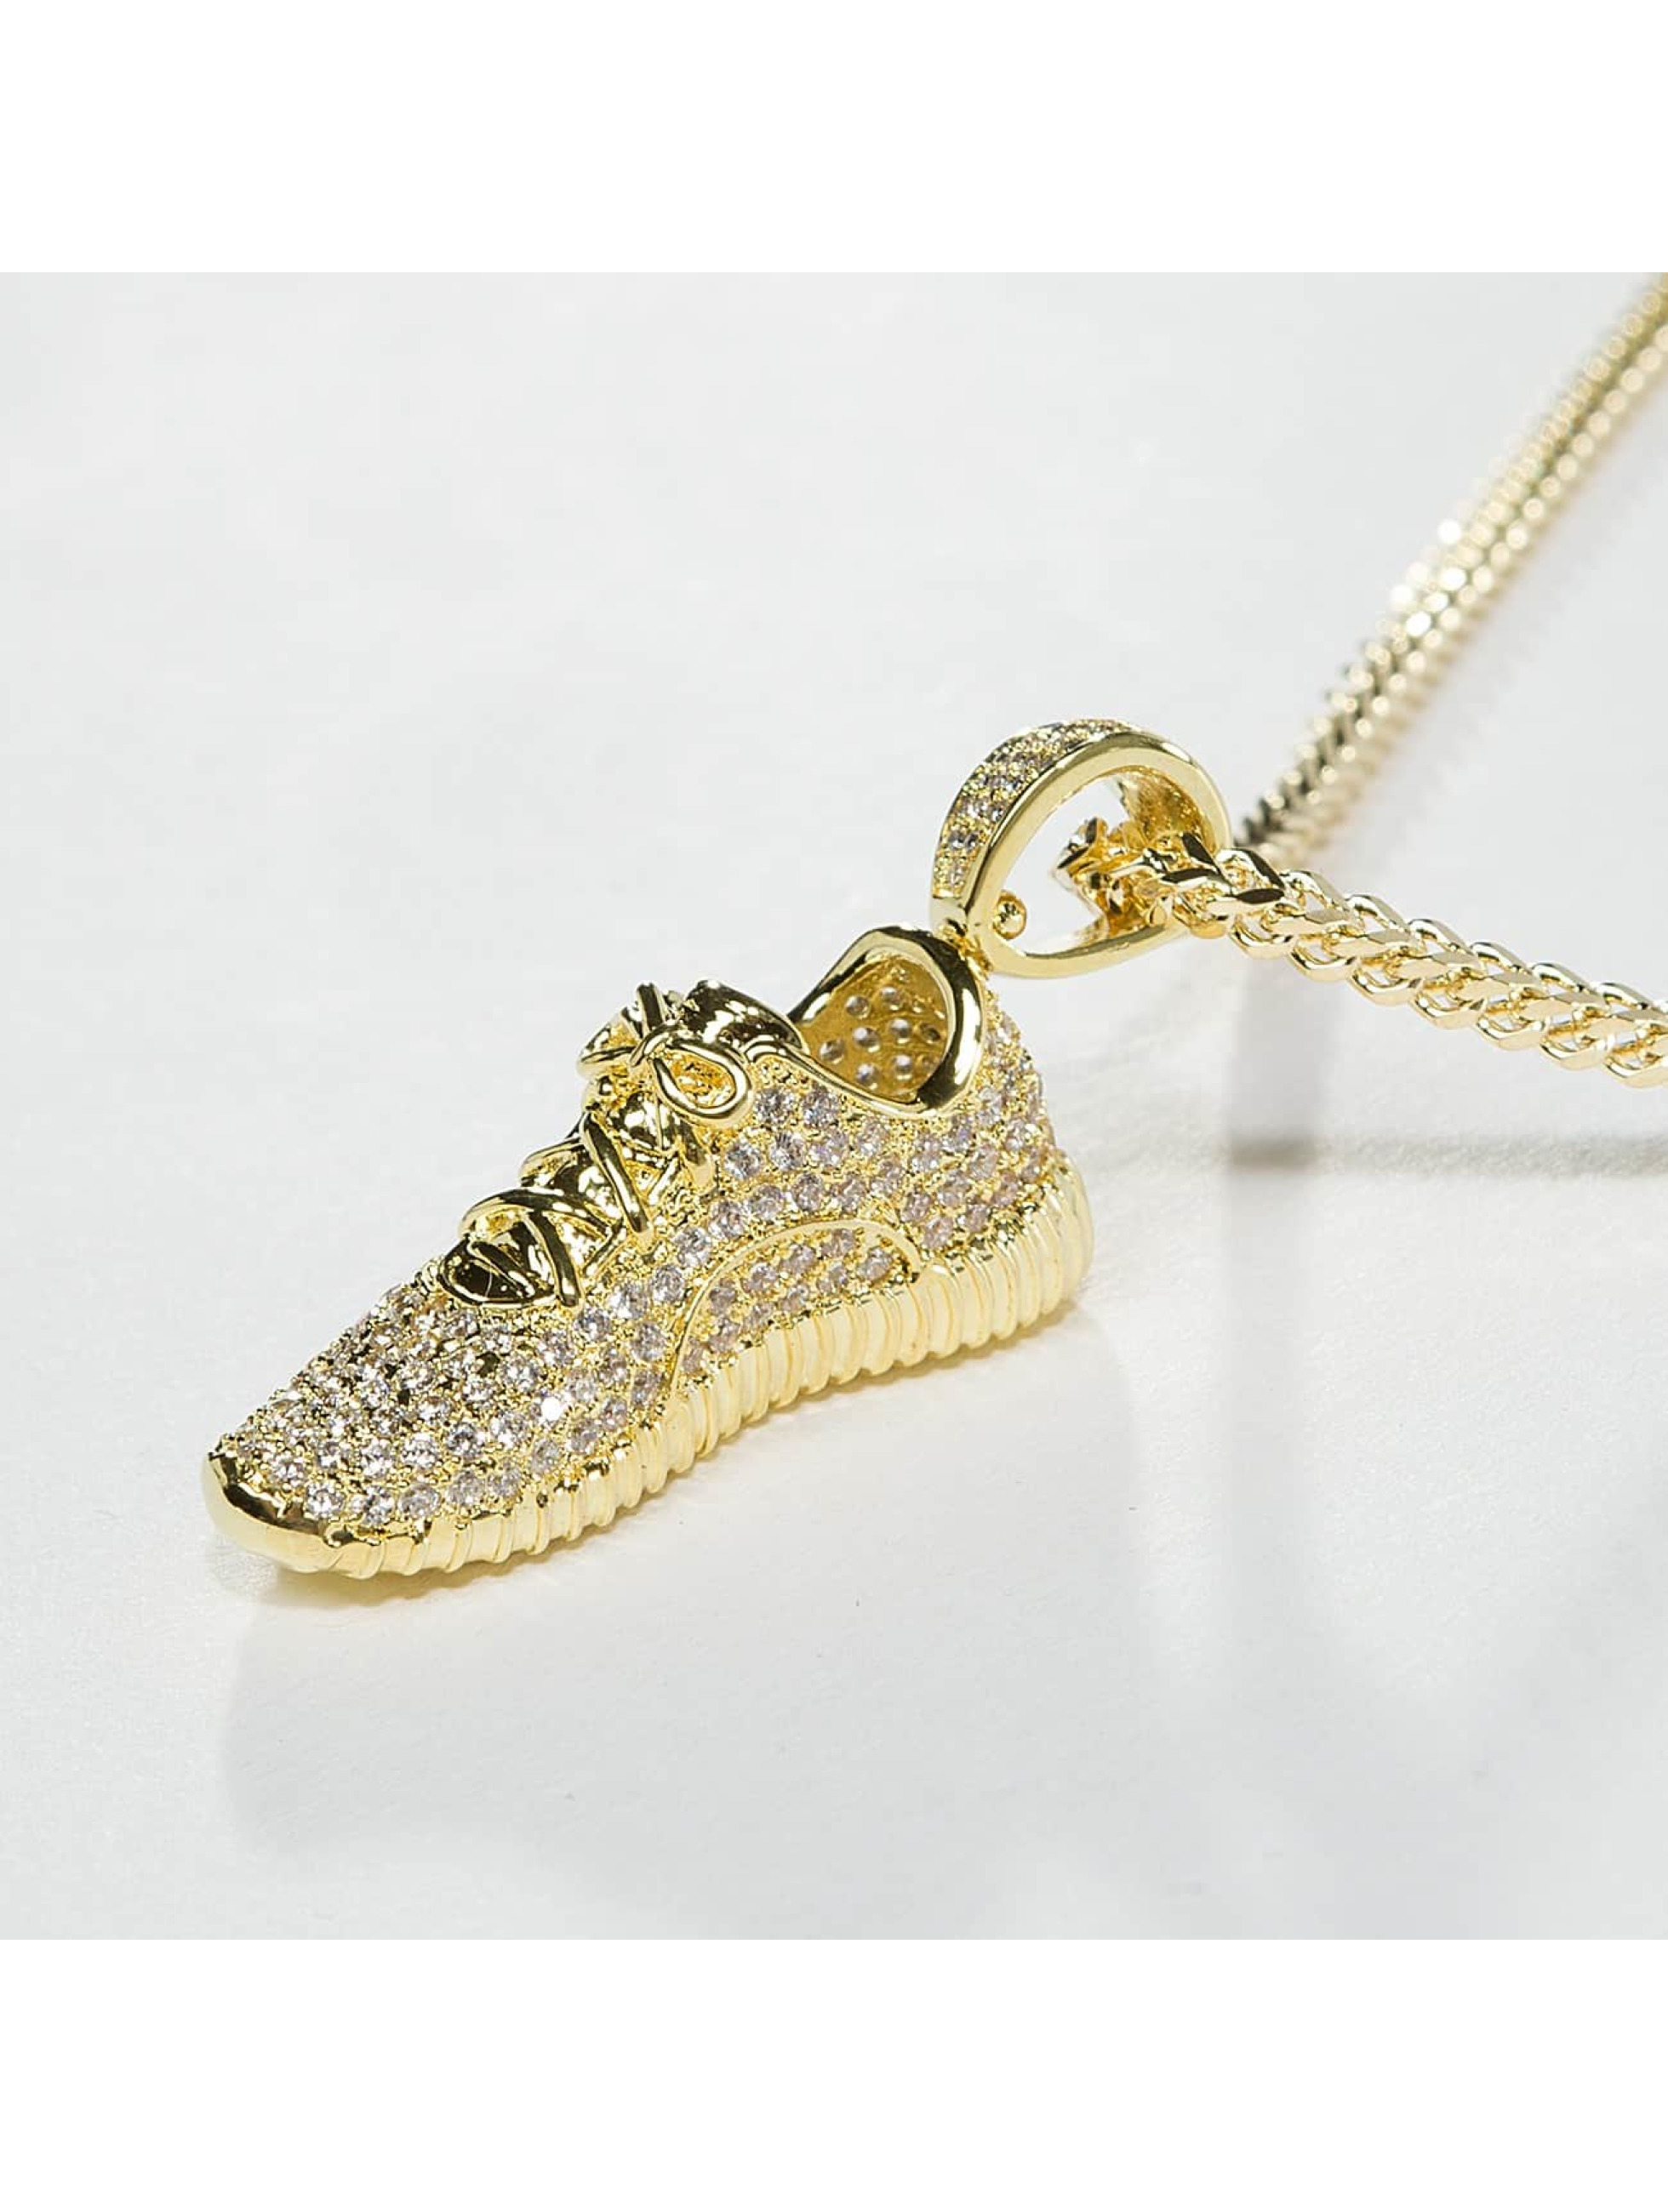 KING ICE ketting Gold_Plated CZ Lifestyle Sneaker goud